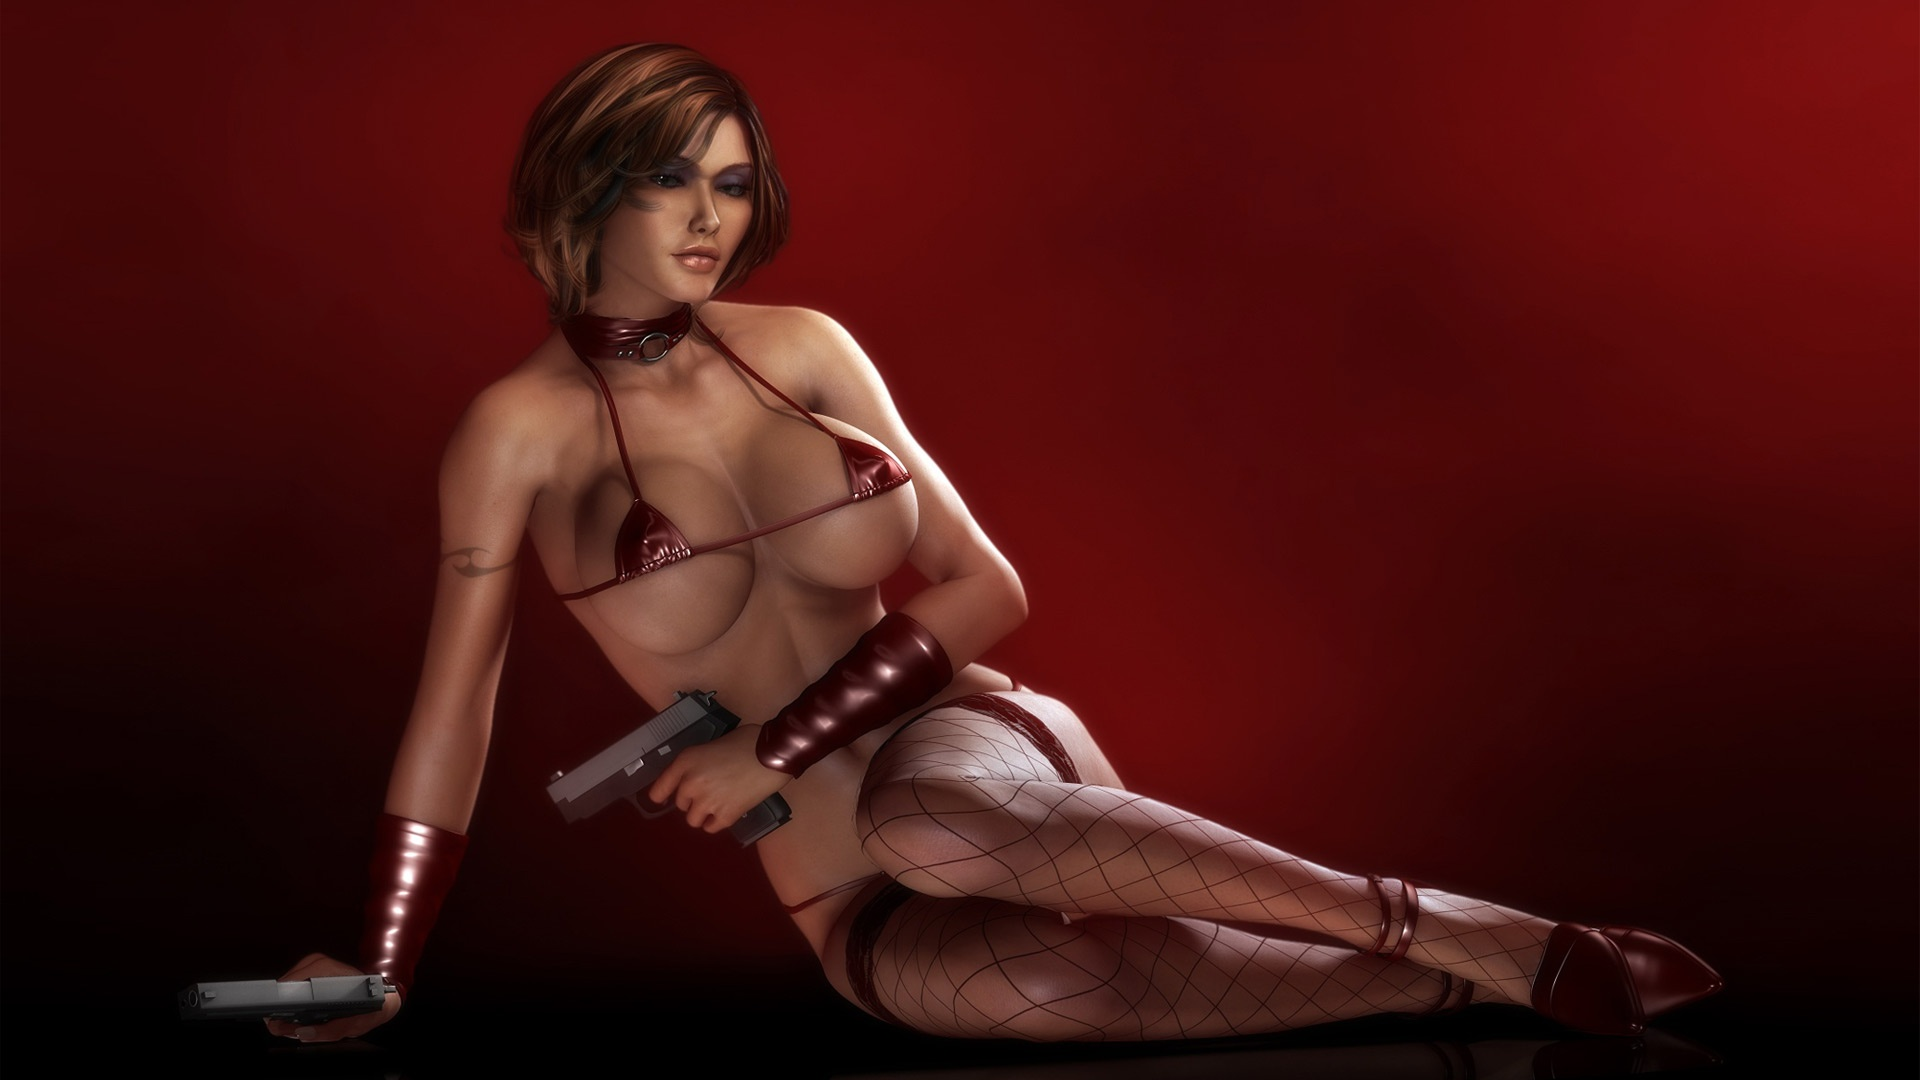 Assassins creed nude skin xxx scene